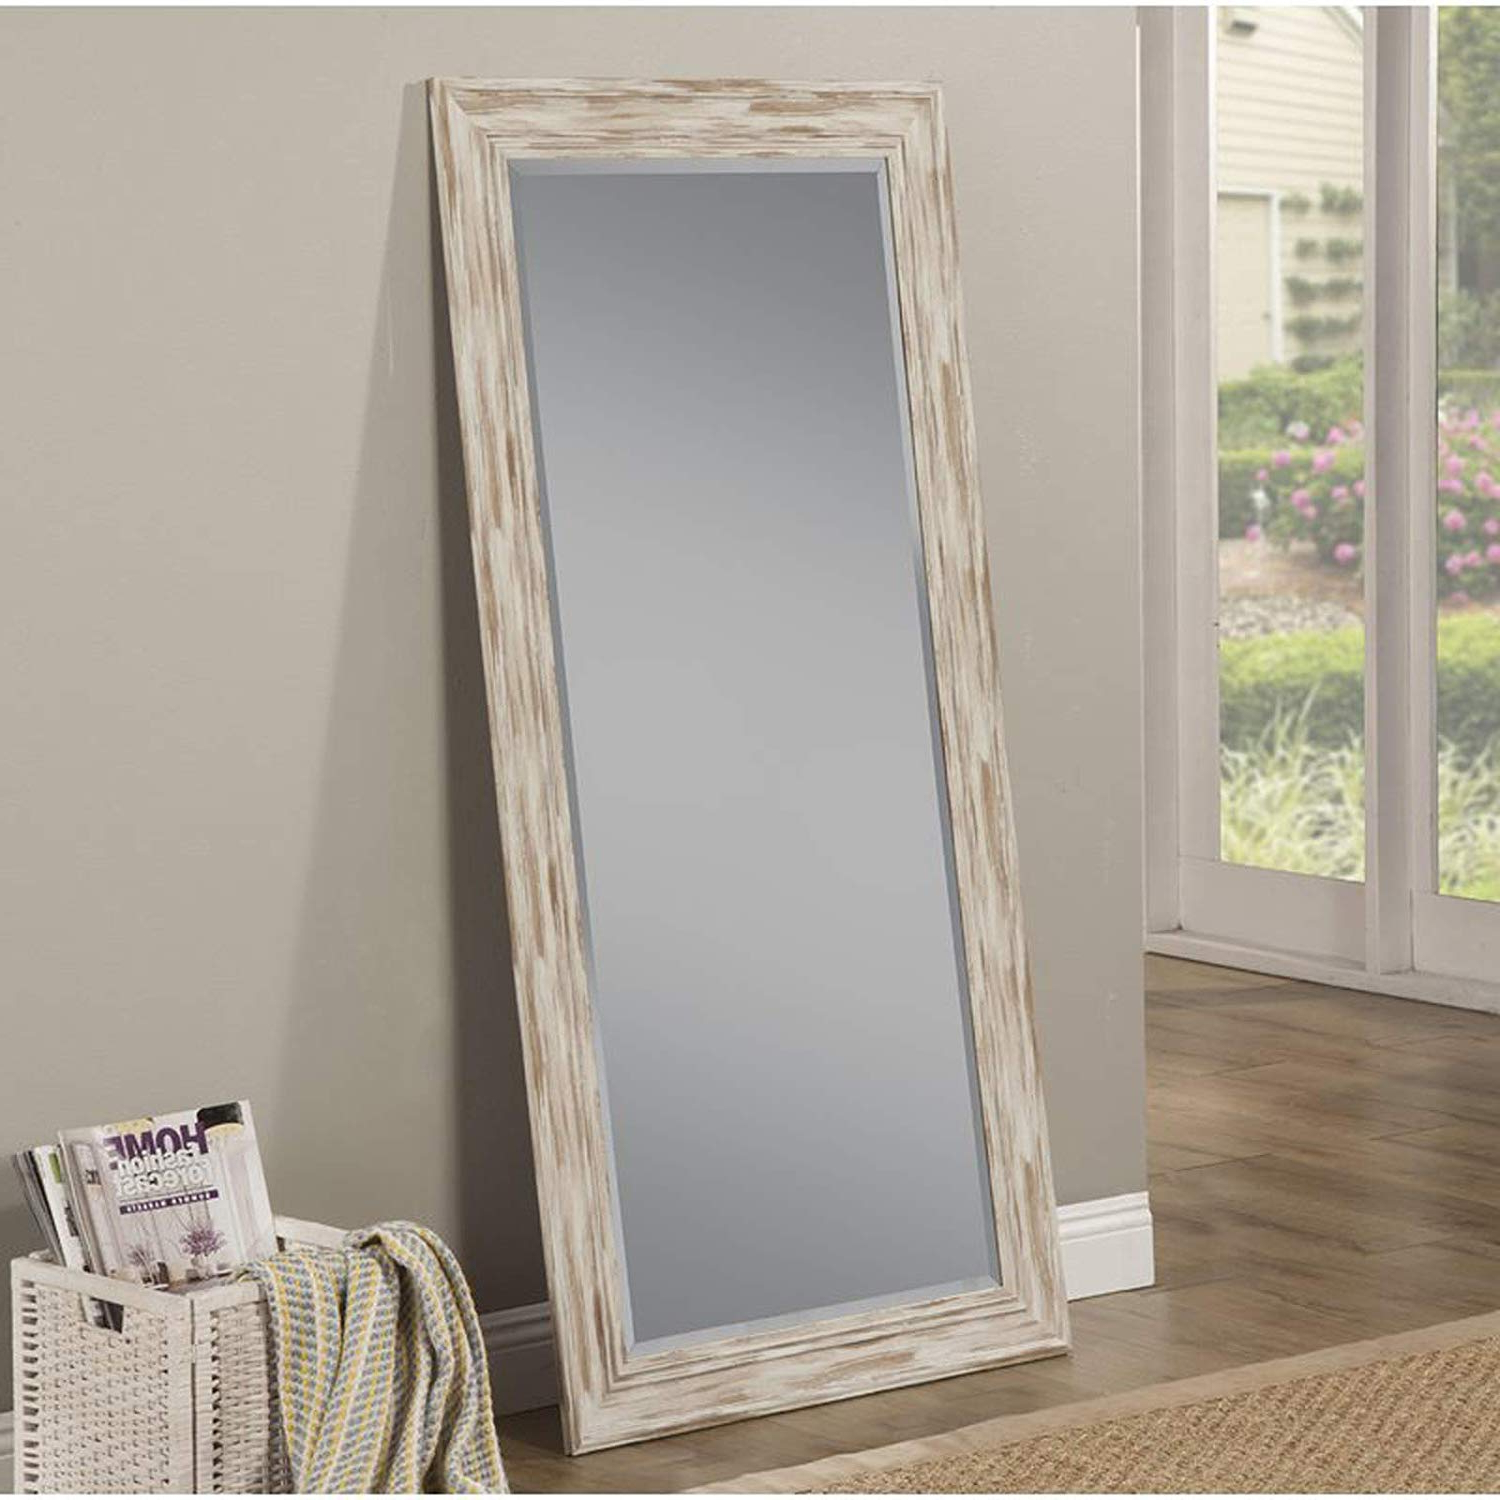 2019 Horizontal Decorative Wall Mirrors Pertaining To Full Length Wall Mirror – Rustic Rectangular Shape Horizontal & Vertical Mirror – Can Be Use In Living Room, Bedroom, Entryway Or Bathroom (antique (View 5 of 20)